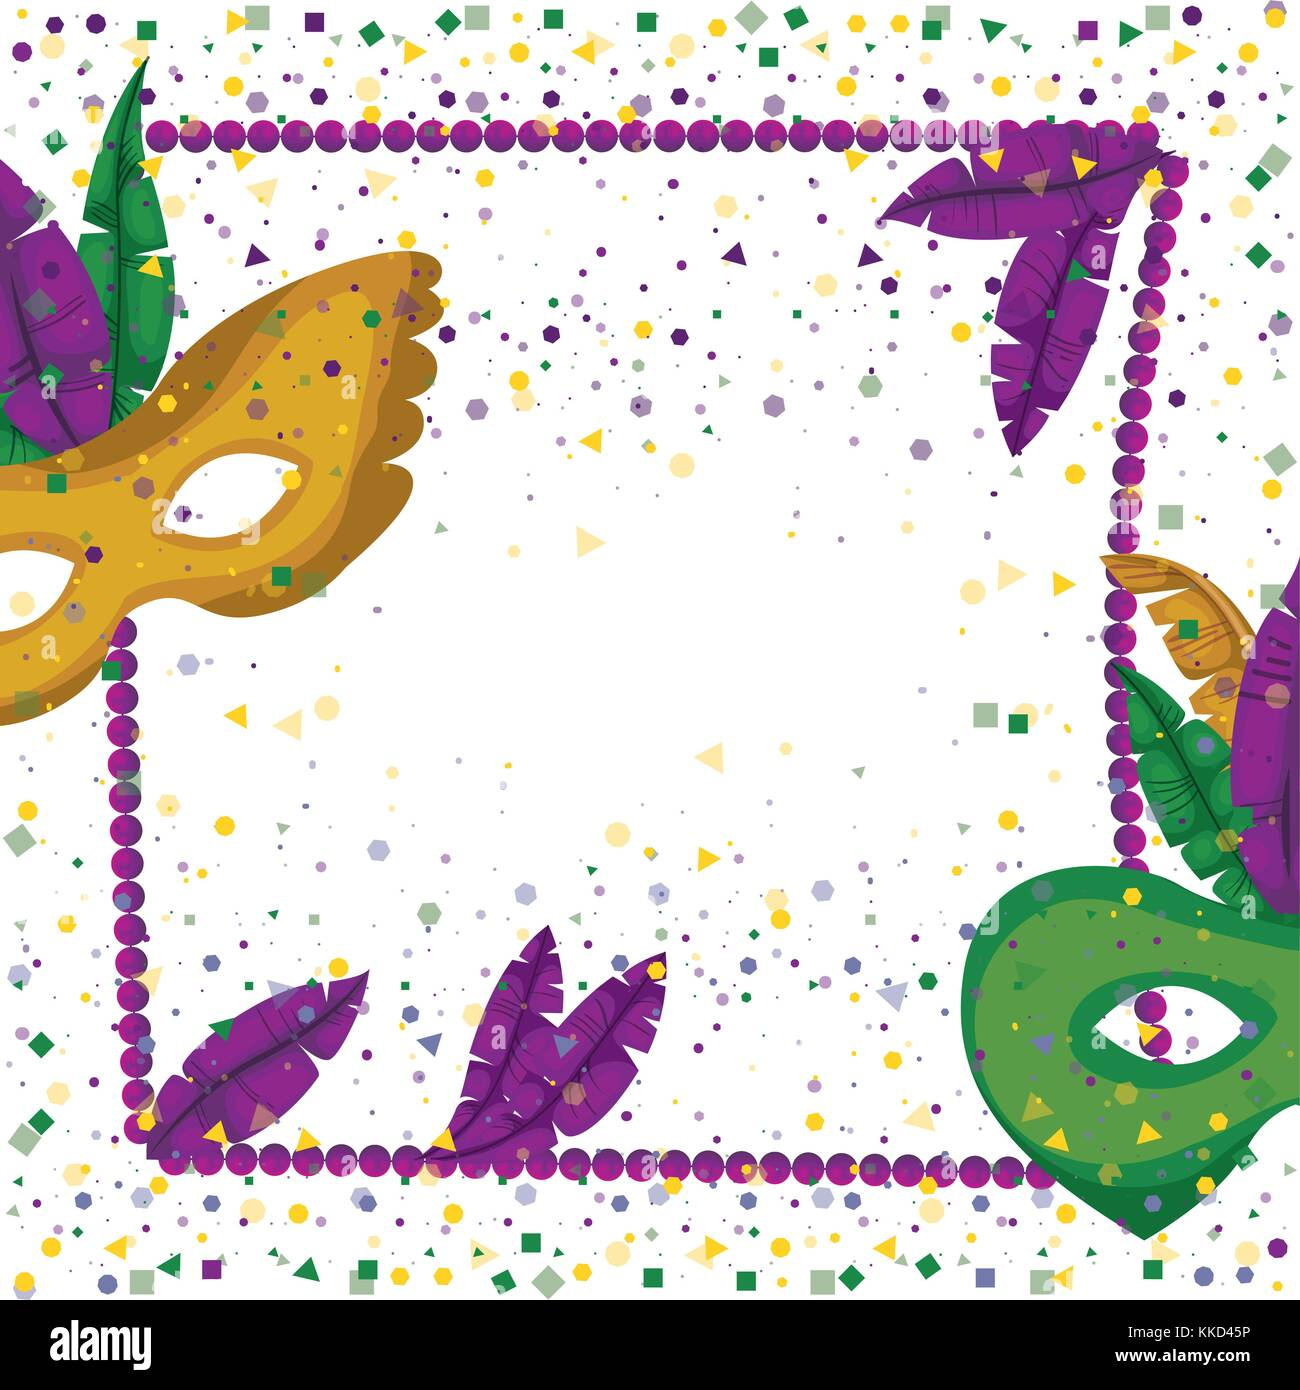 carnival mardi gras poster with purple necklace frame with feathers ...